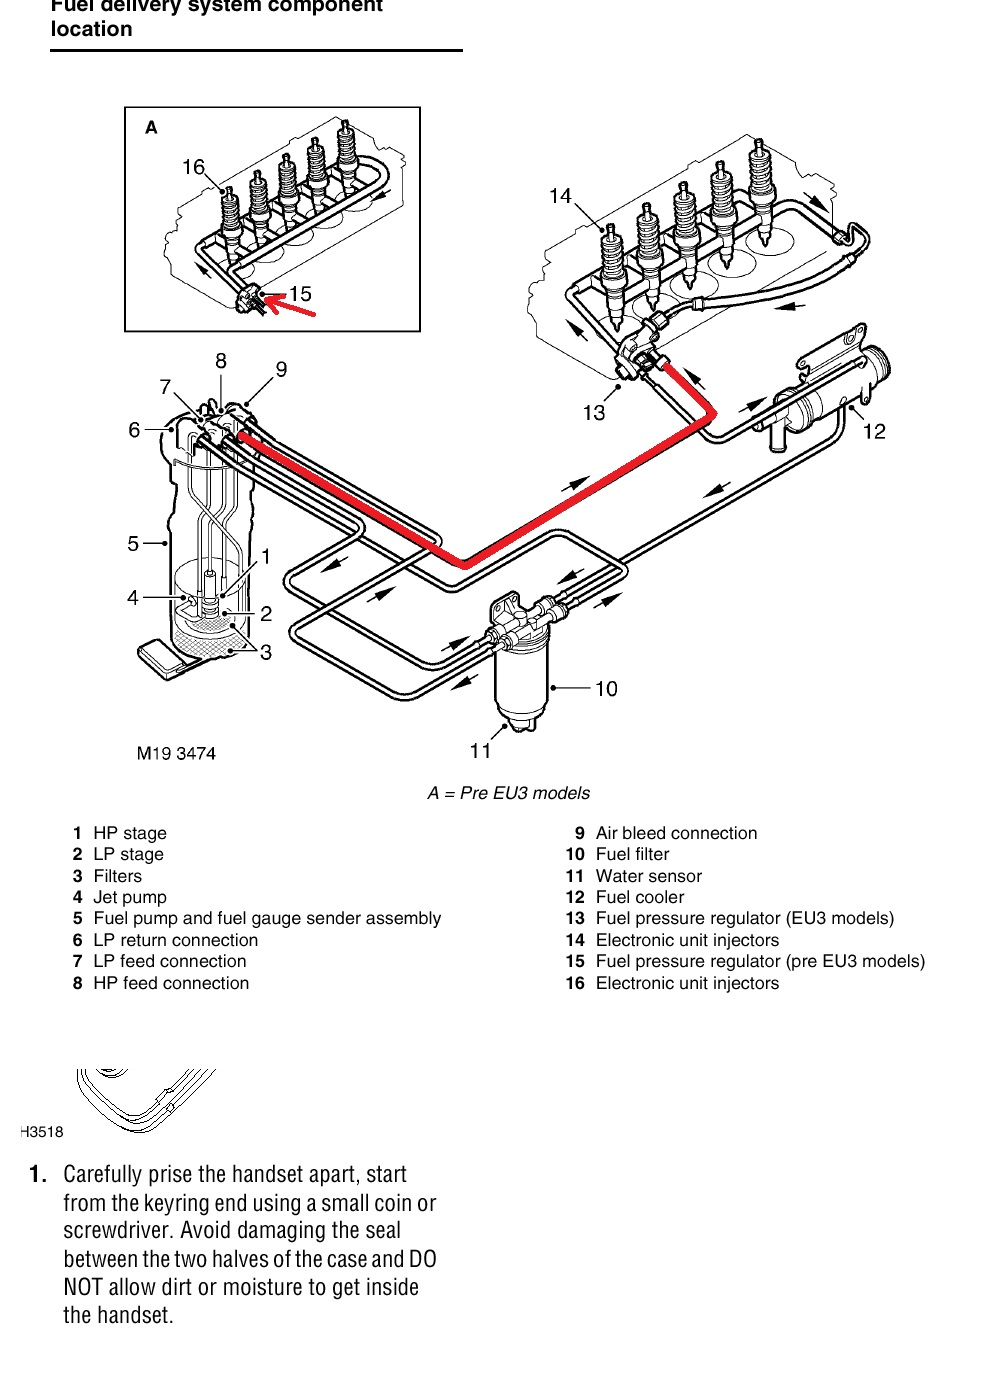 Fuel Delivery System Wiring Diagrams Of A Bmw 320i All About Wiring